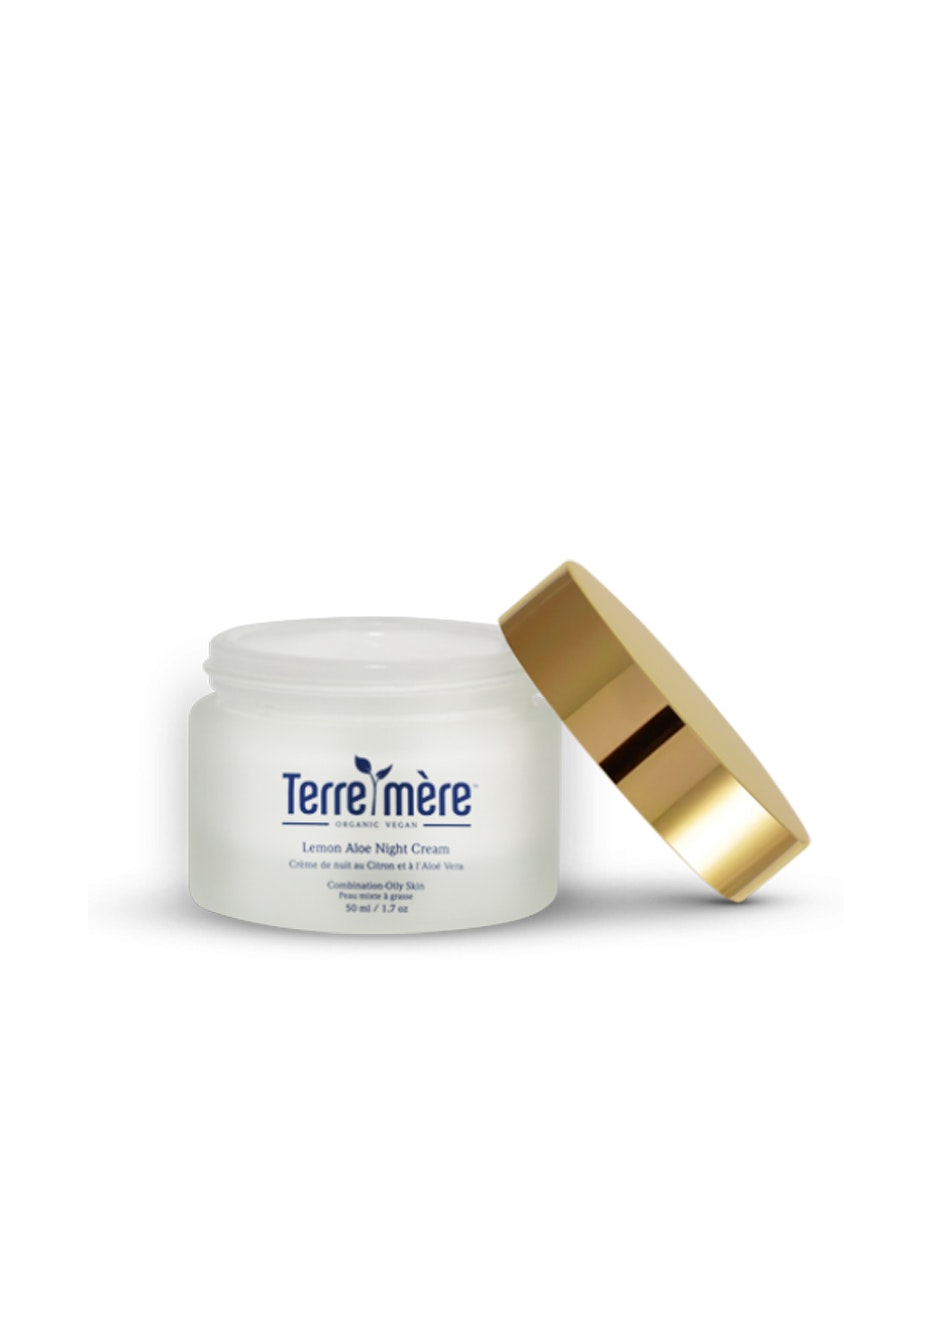 Terre Mere - Lemon Aloe Night Cream - Combination-Oily Skin